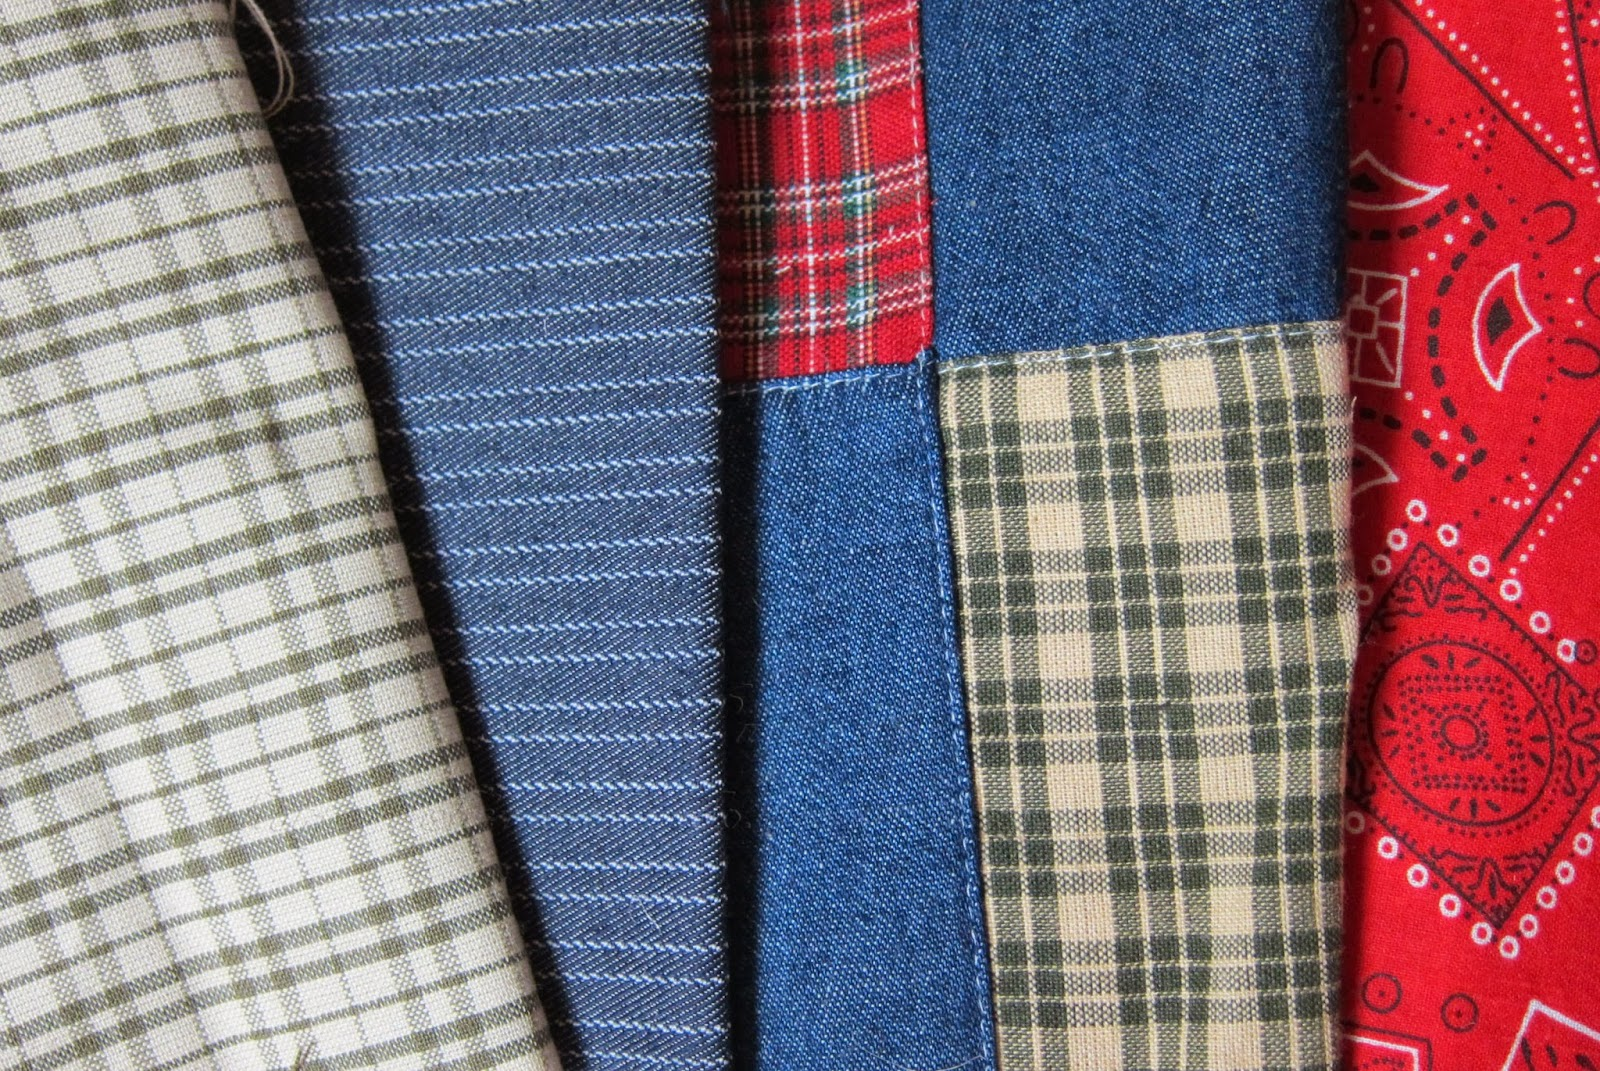 plaid and blue jean fabric